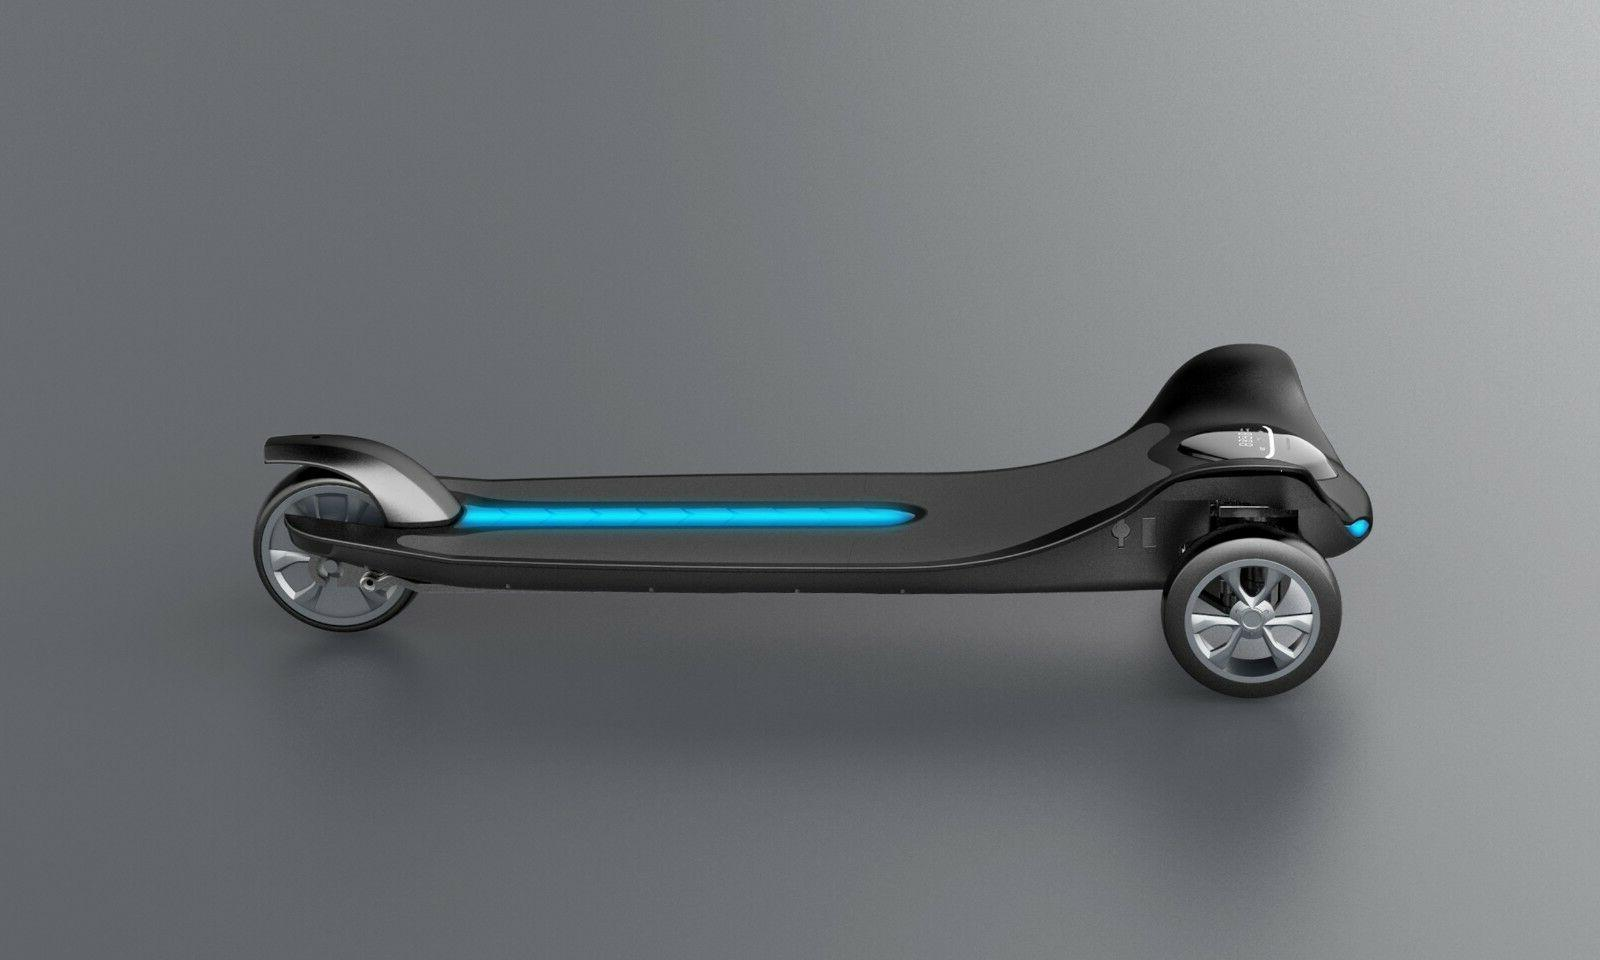 TOMOLOO 3 Three Wheel Scooter Skateboard Remote